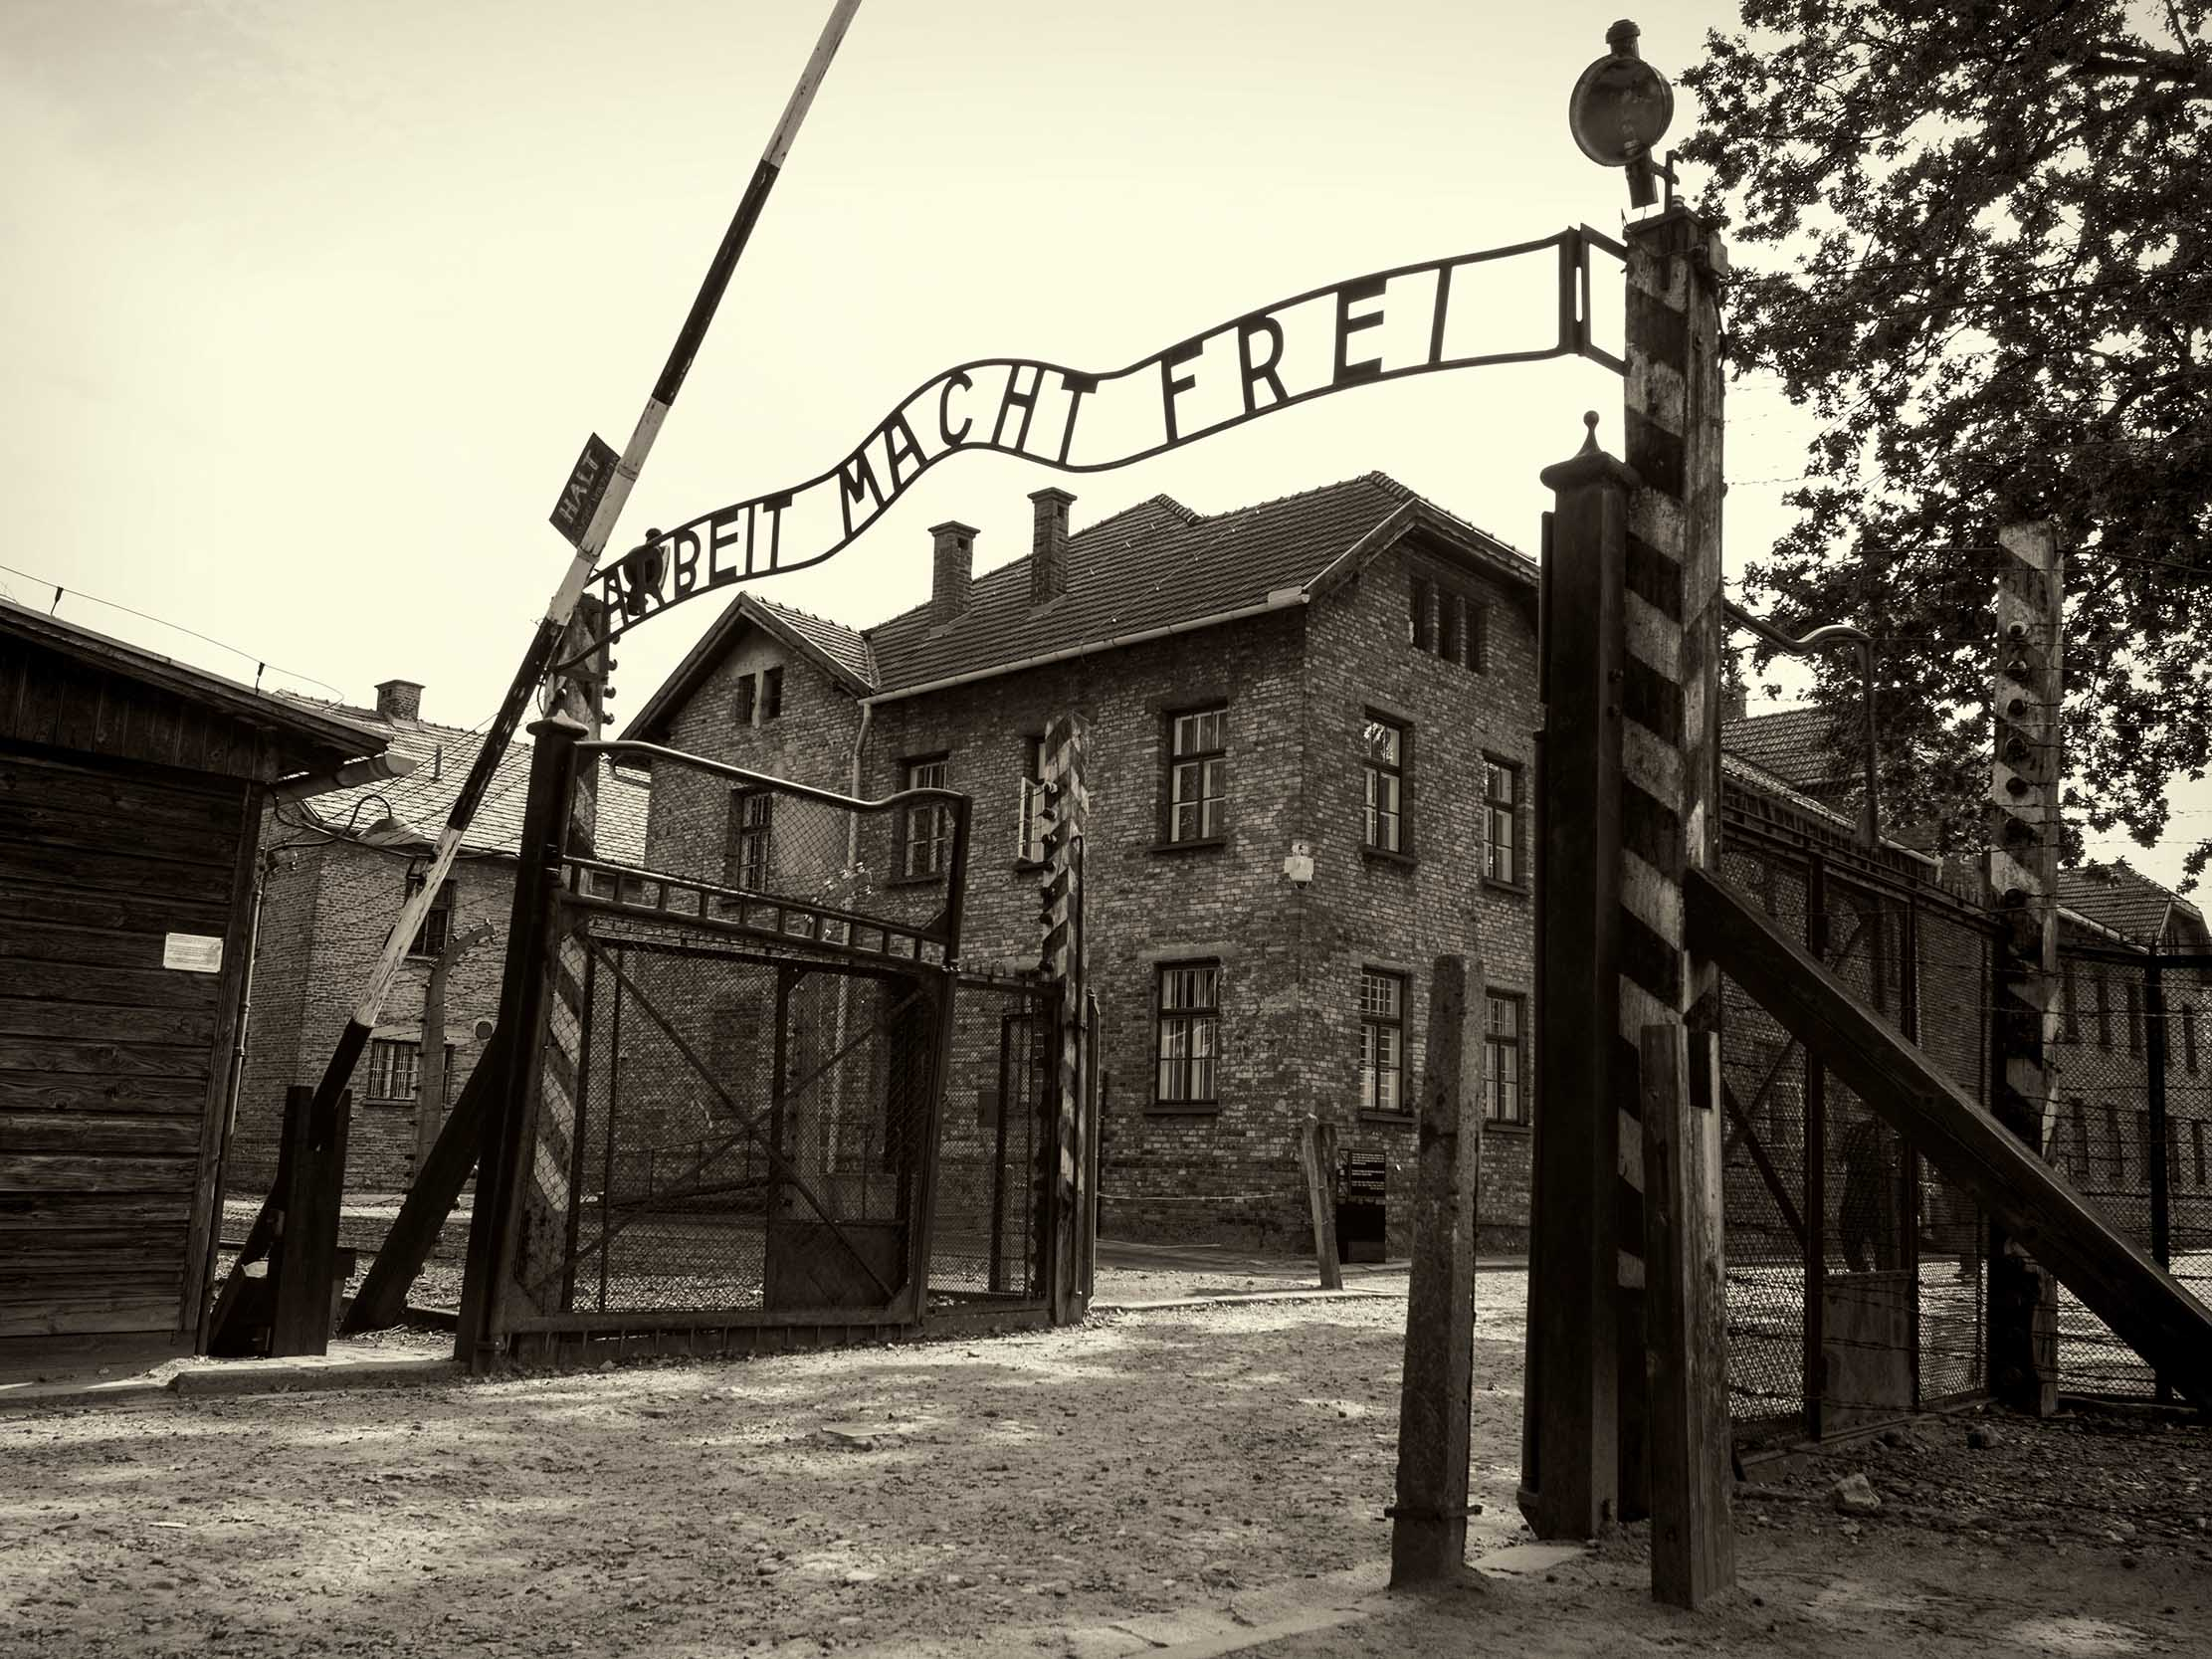 holocaust devil i n vienna essay (results page 2) view and download holocaust essays examples also discover topics, titles, outlines, thesis statements, and conclusions for your holocaust essay.